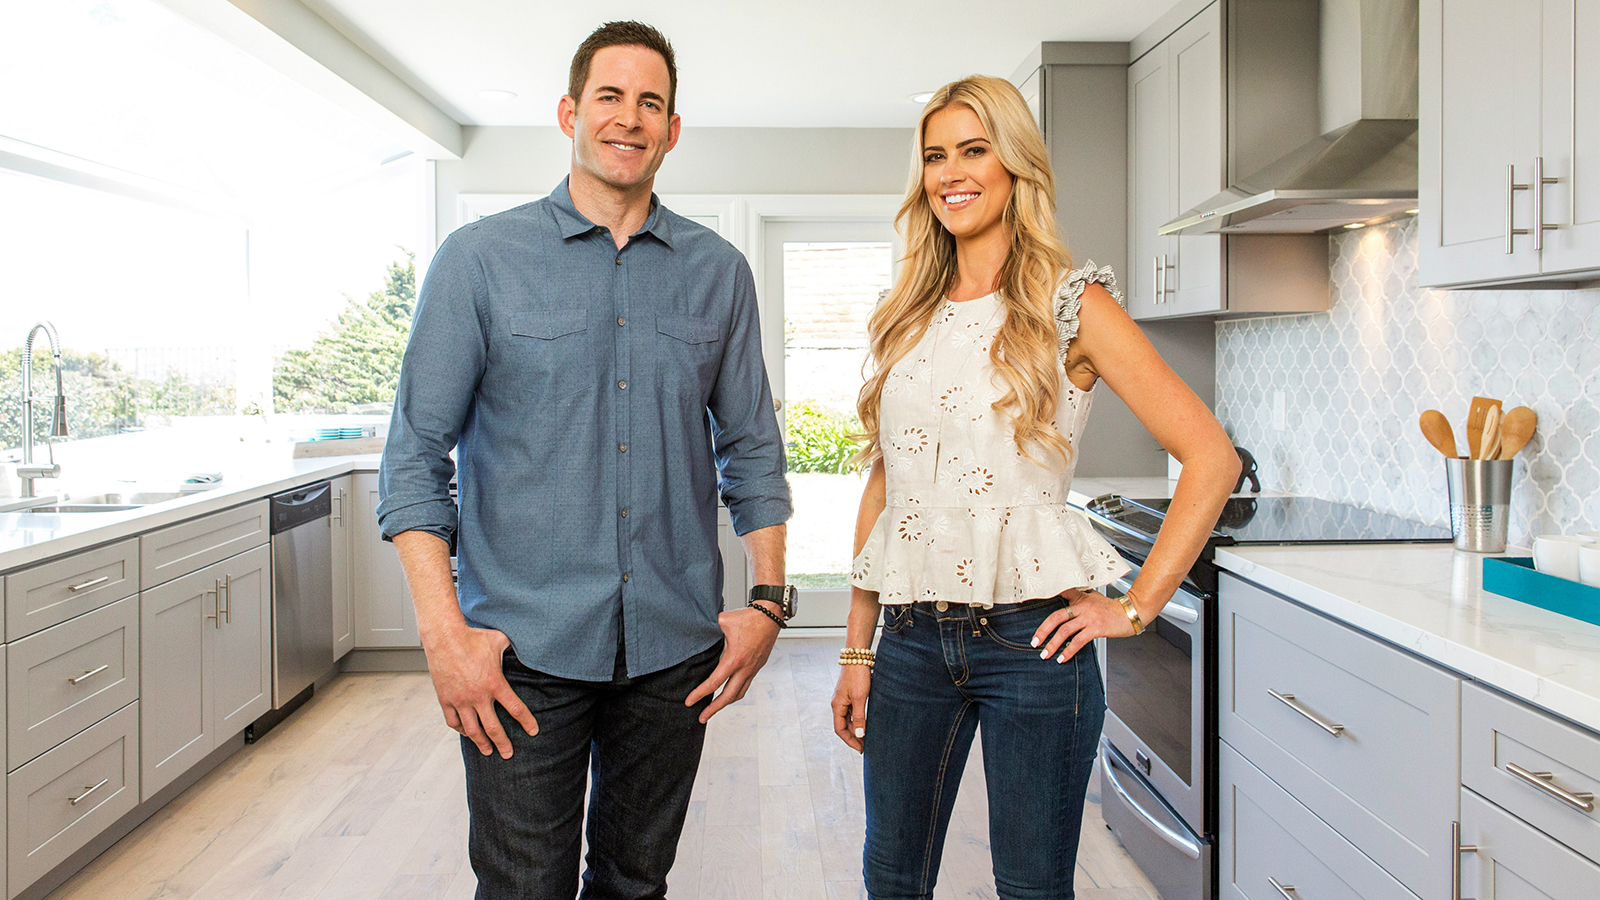 Their Marriage ~Flopped~ but Christina and Tarek El Moussa's Quotes About Each Other Post-Split Are Cute, TBH